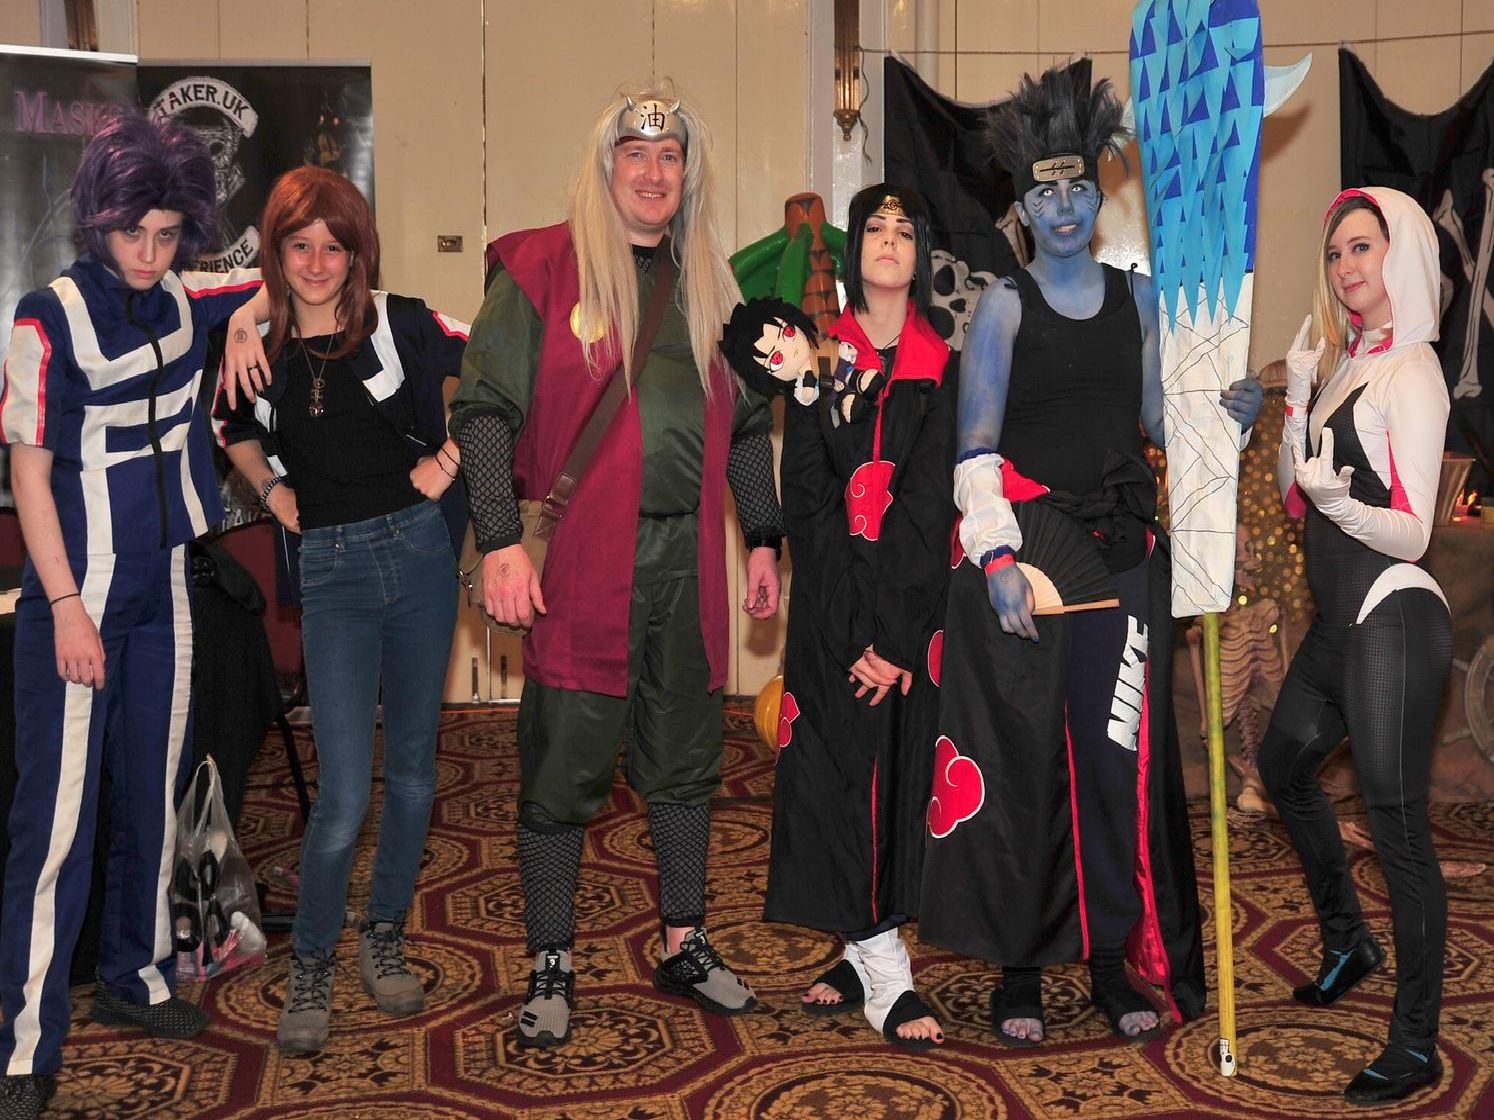 Come of the many cosplayers from the day.